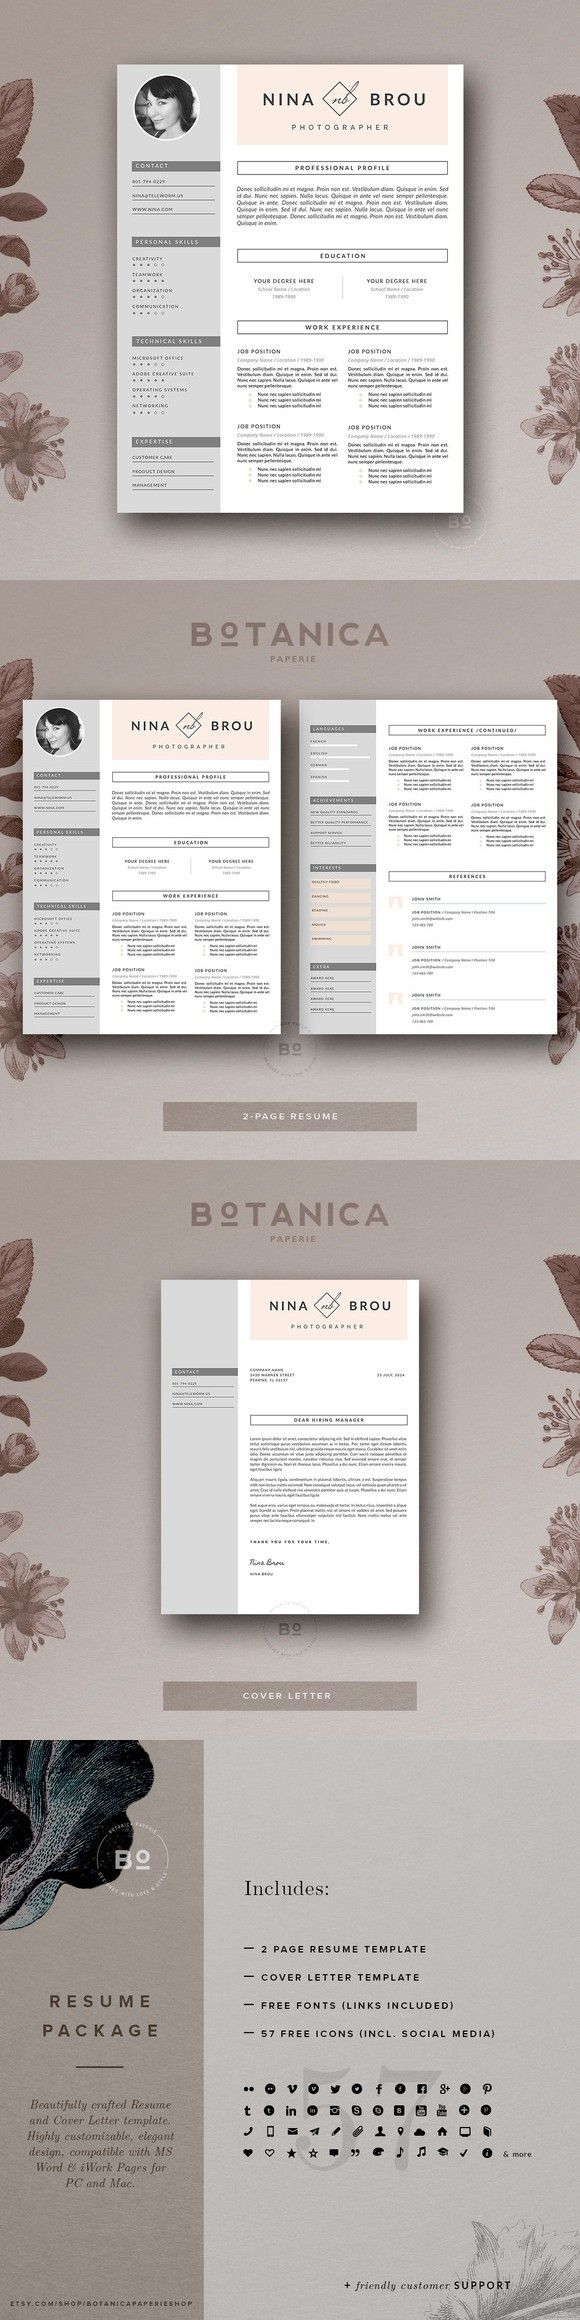 80 best resume & folio inspiration images on Pinterest | Resume ...